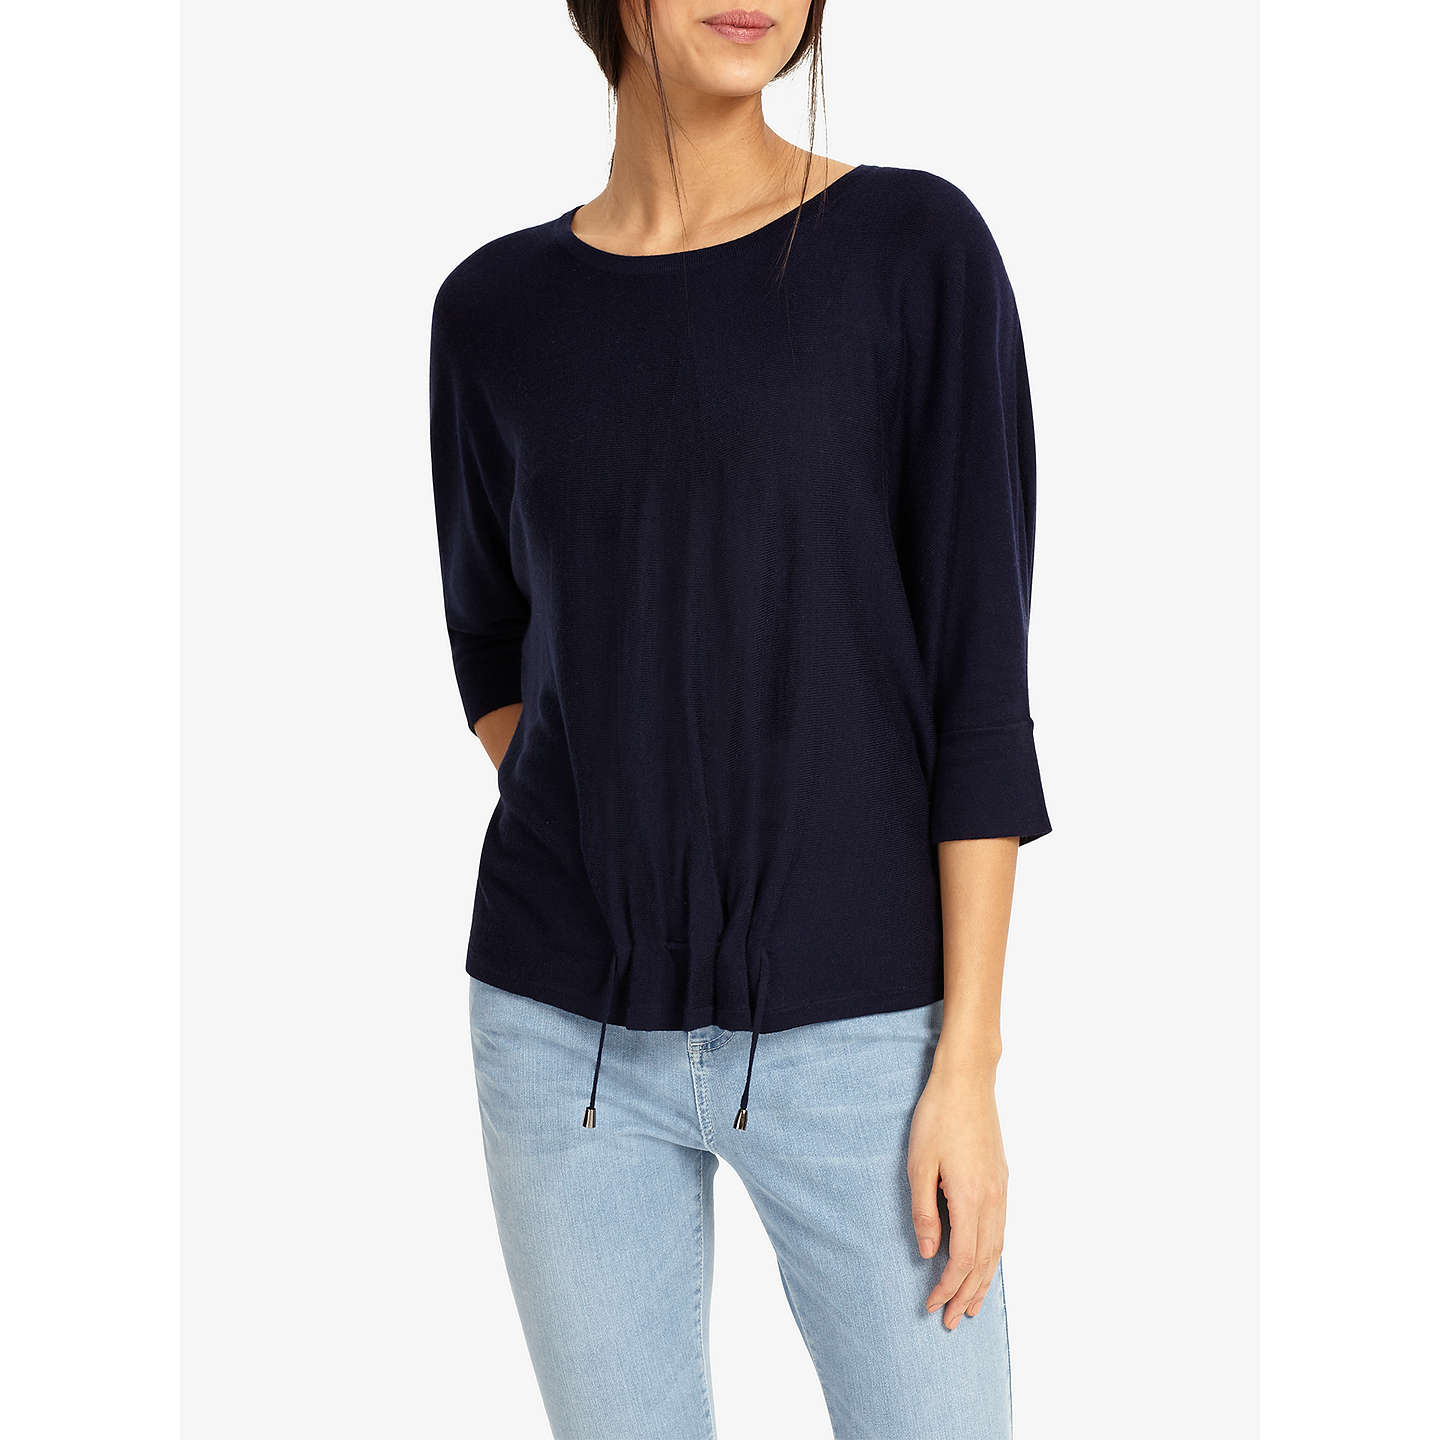 BuyPhase Eight Raaker Ruch Front Knit Jumper, Navy, XS Online at johnlewis.com